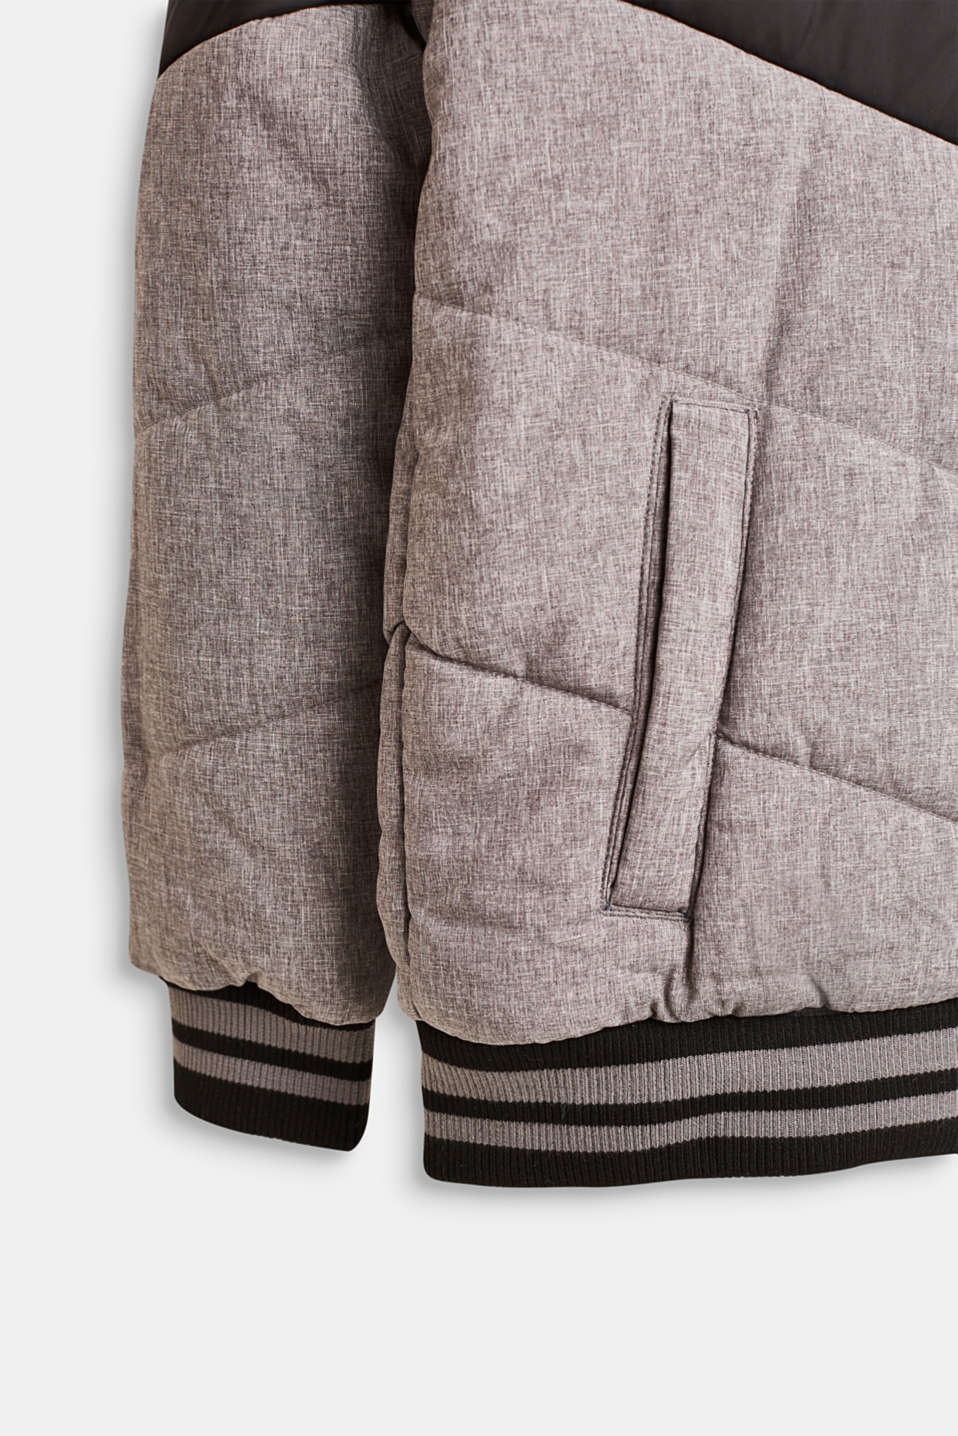 Jackets outdoor woven, LCDARK HEATHER G, detail image number 5